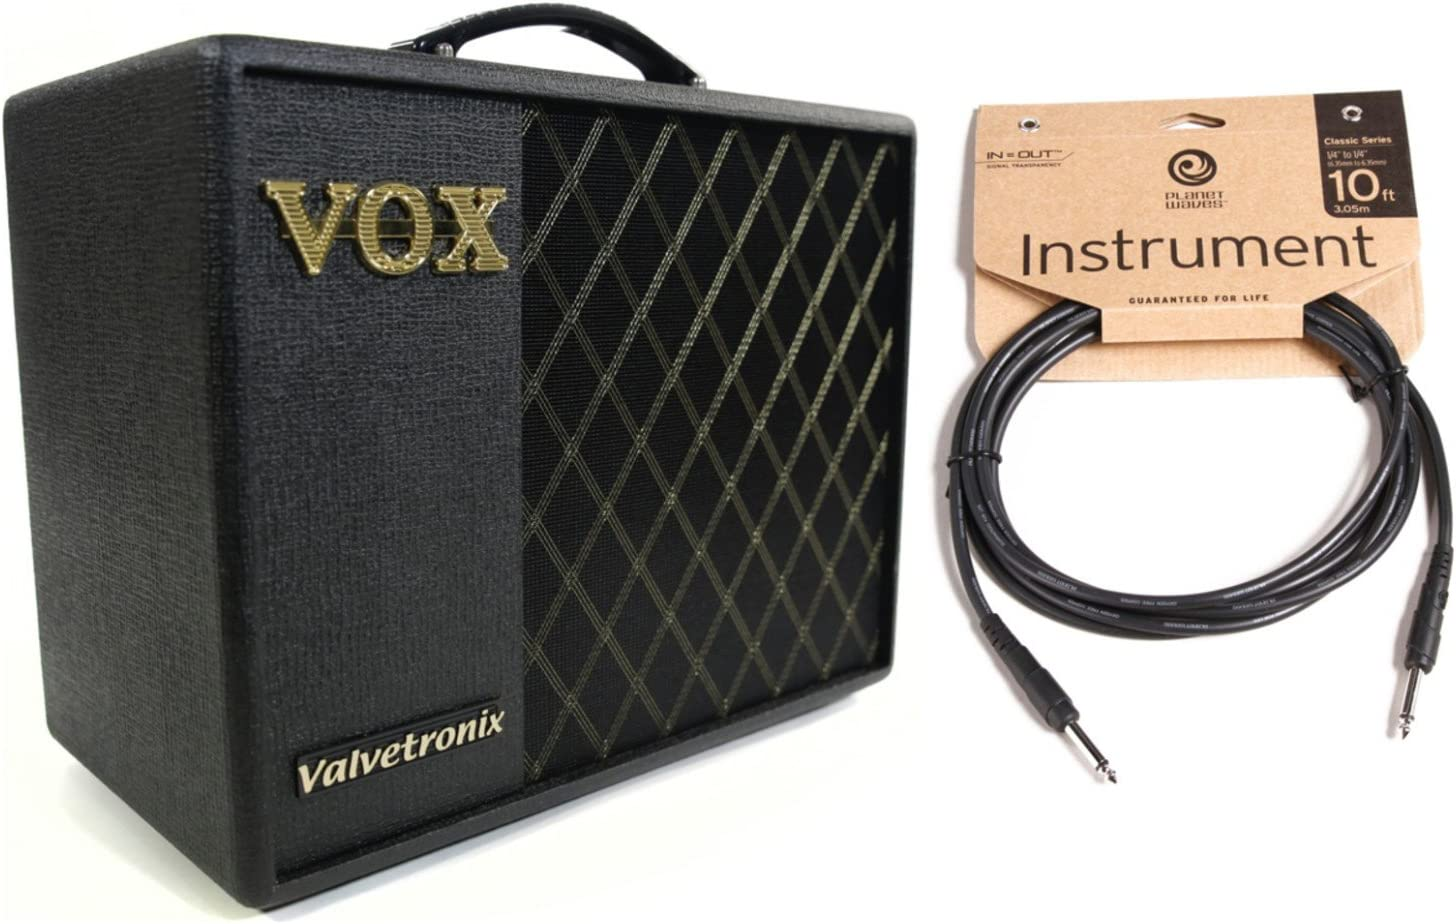 VOX VT20X 20W Guitar Modeling Amplifer w// 10 Classic Series Instrument Cable